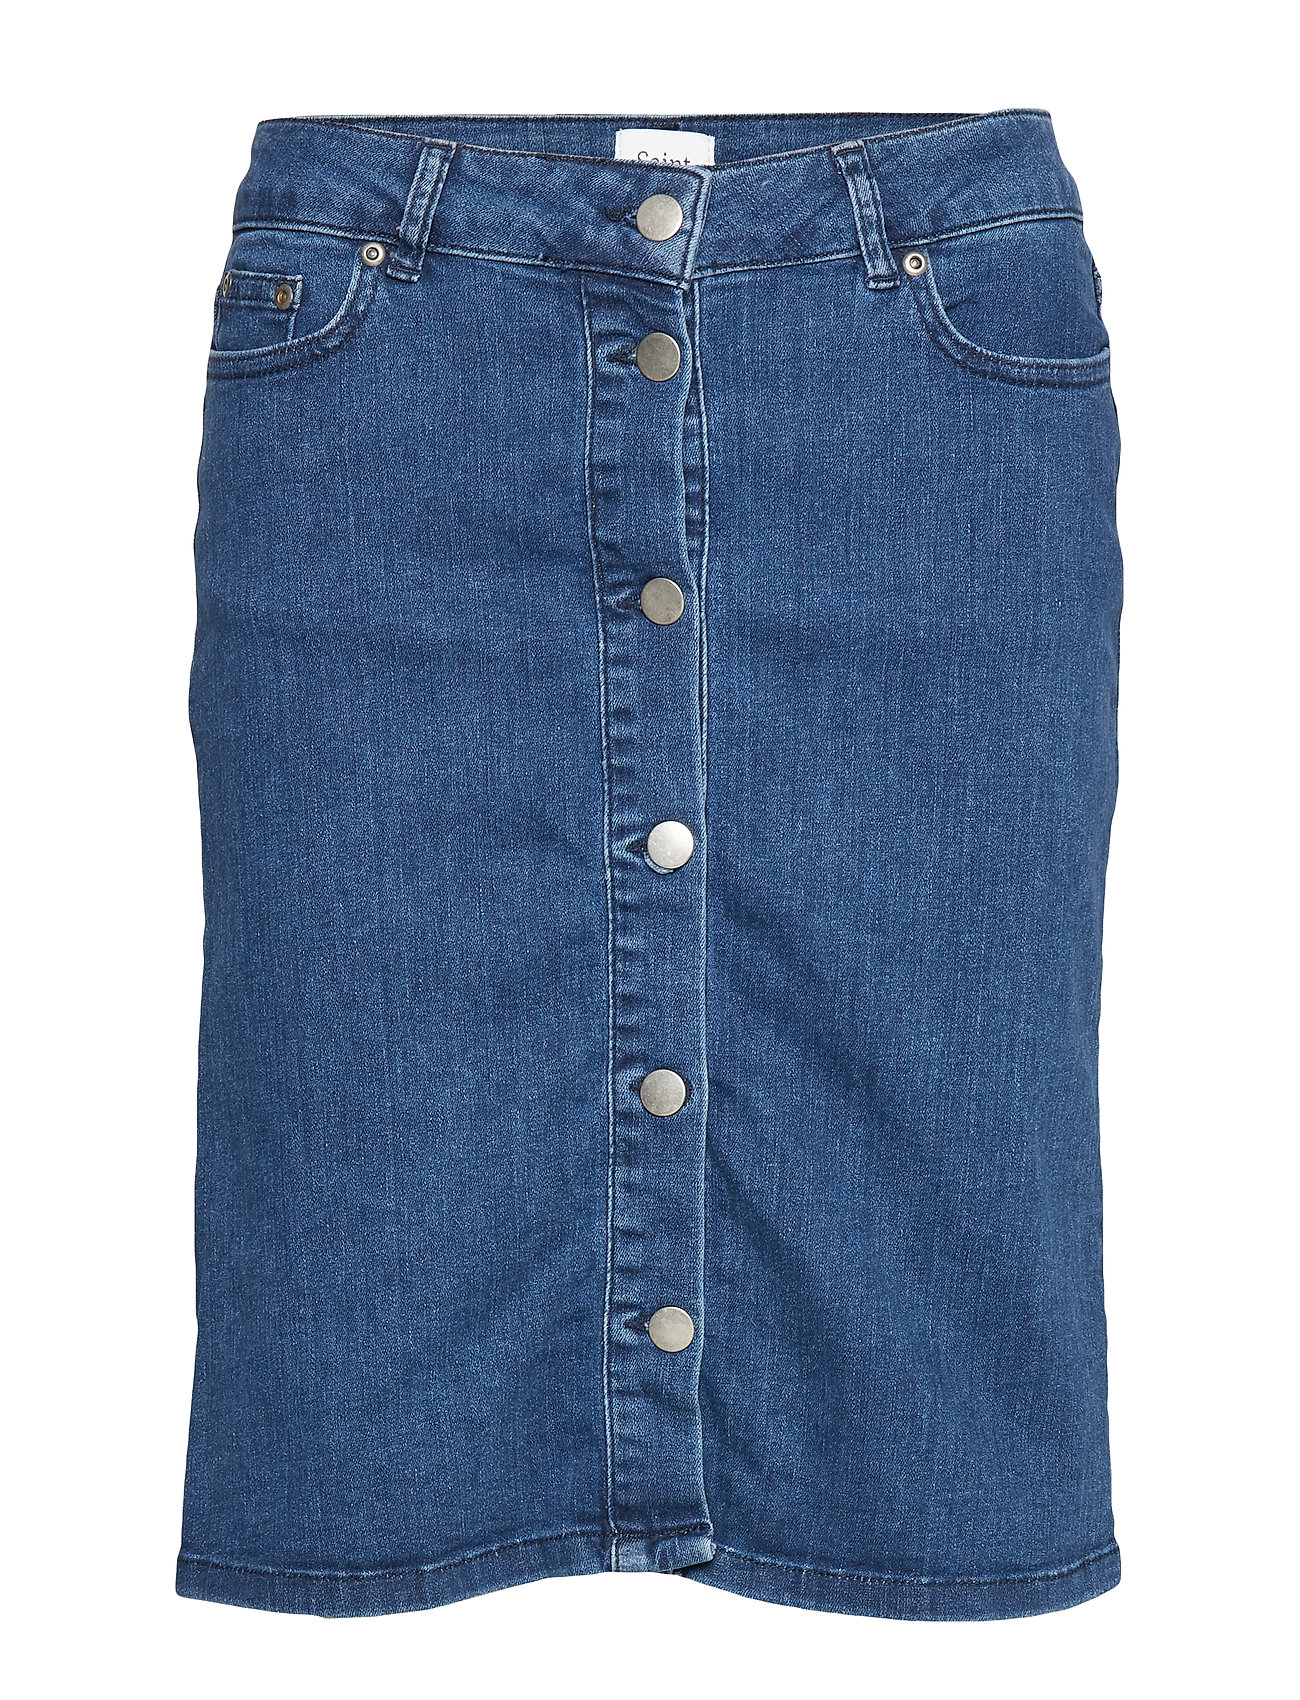 Saint Tropez U8013, SKIRT DENIM ABOVE KNEE - MED.BLUE